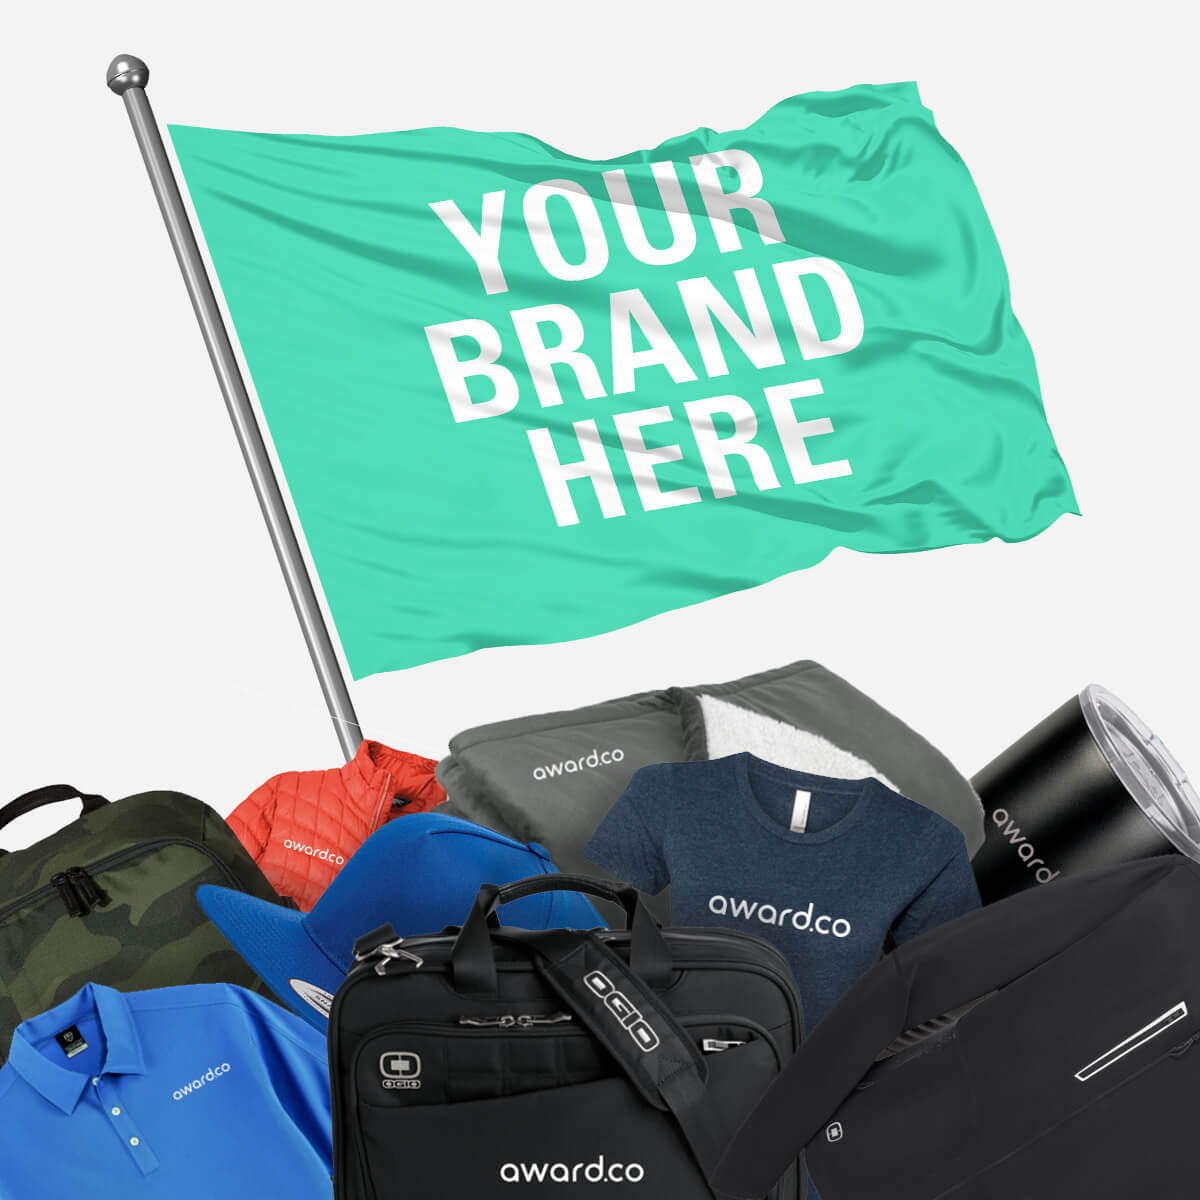 It's never been easier to offer your employees high-quality branded swag.